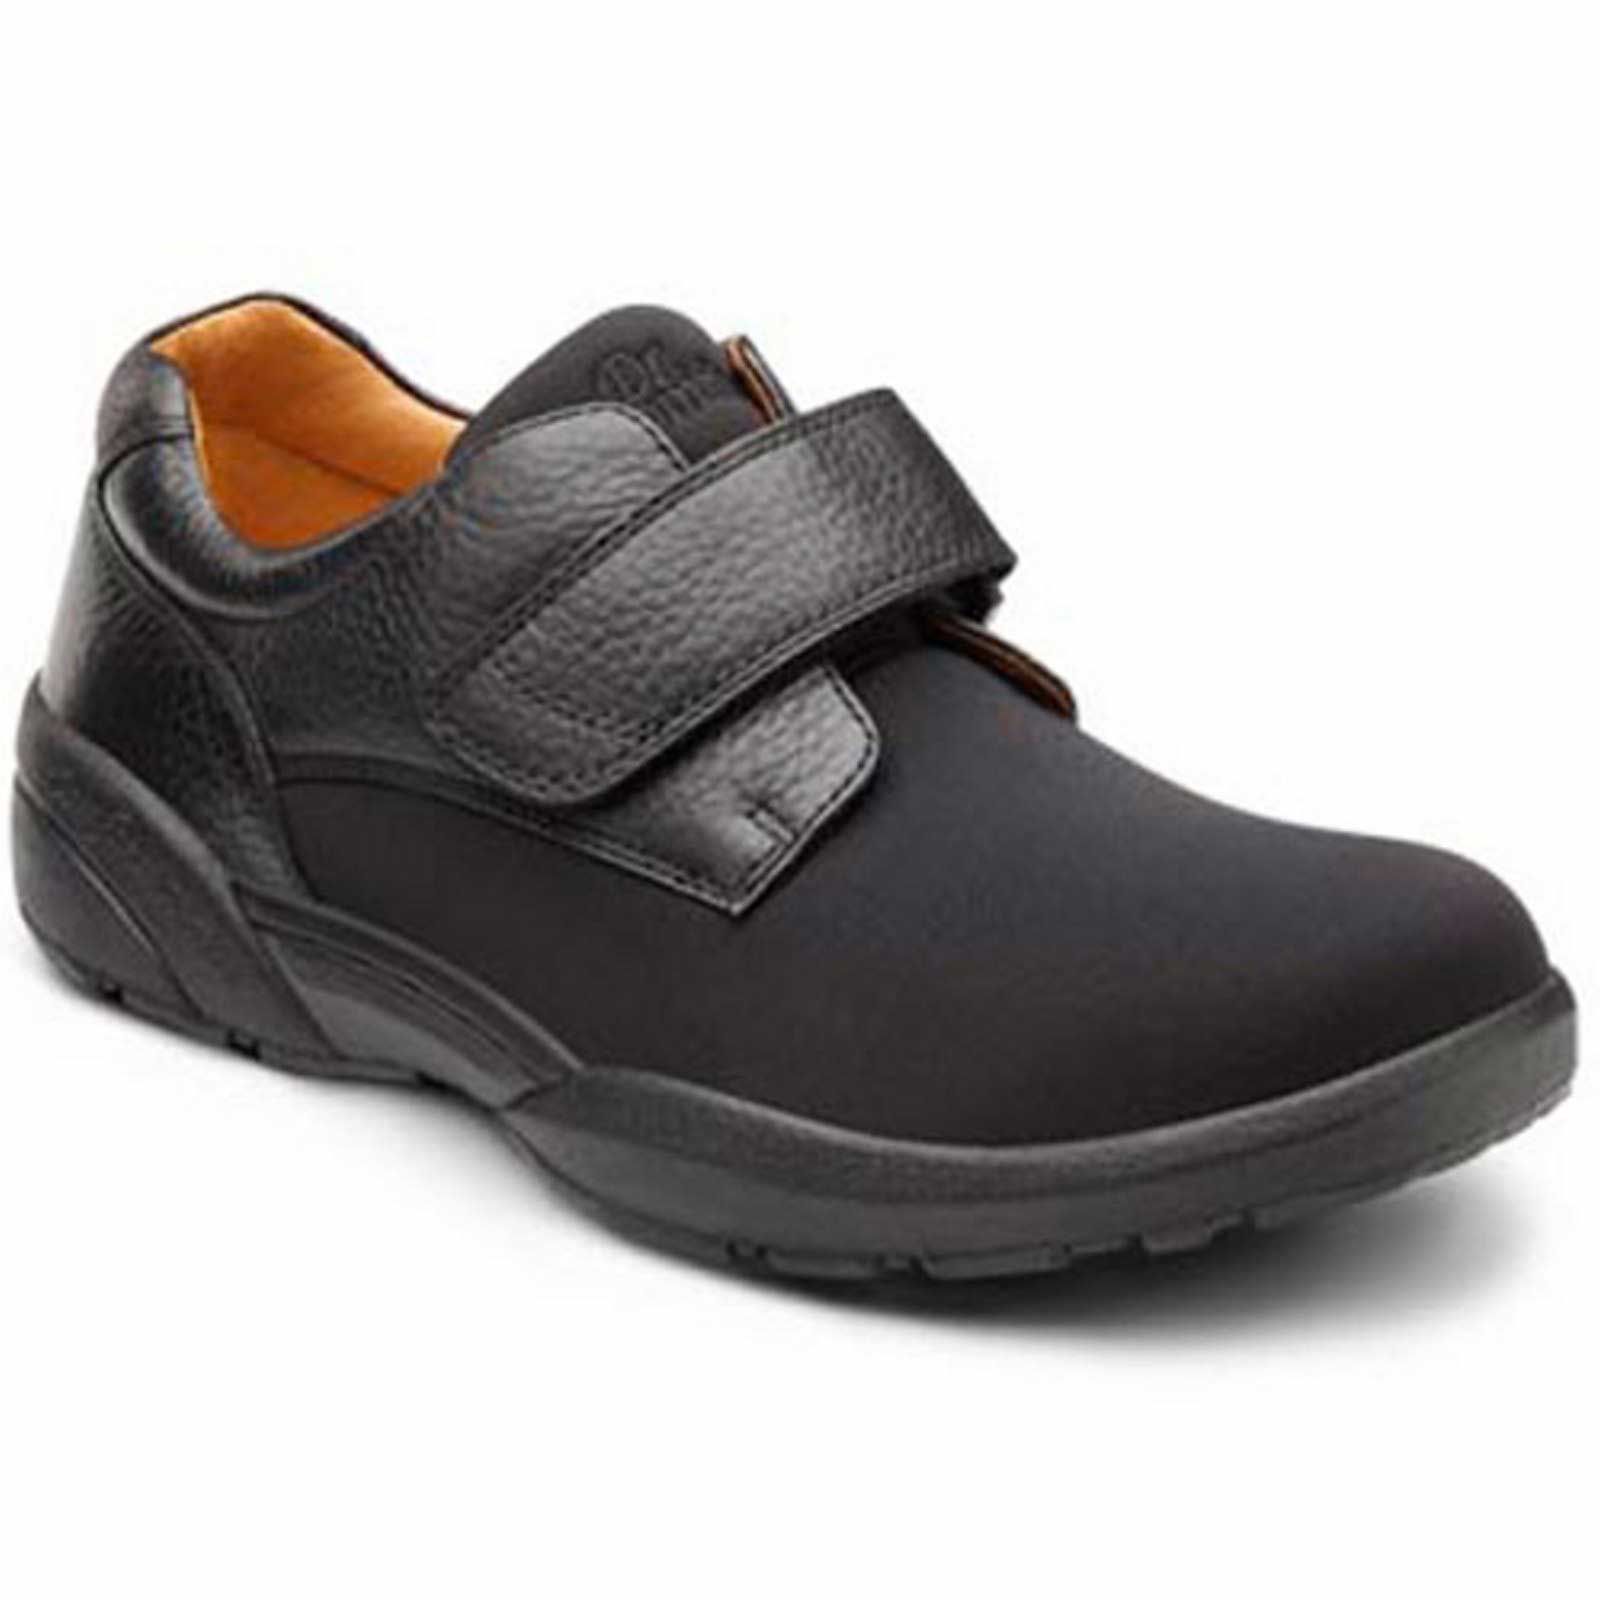 Best Work Shoes For Men Black E Wide